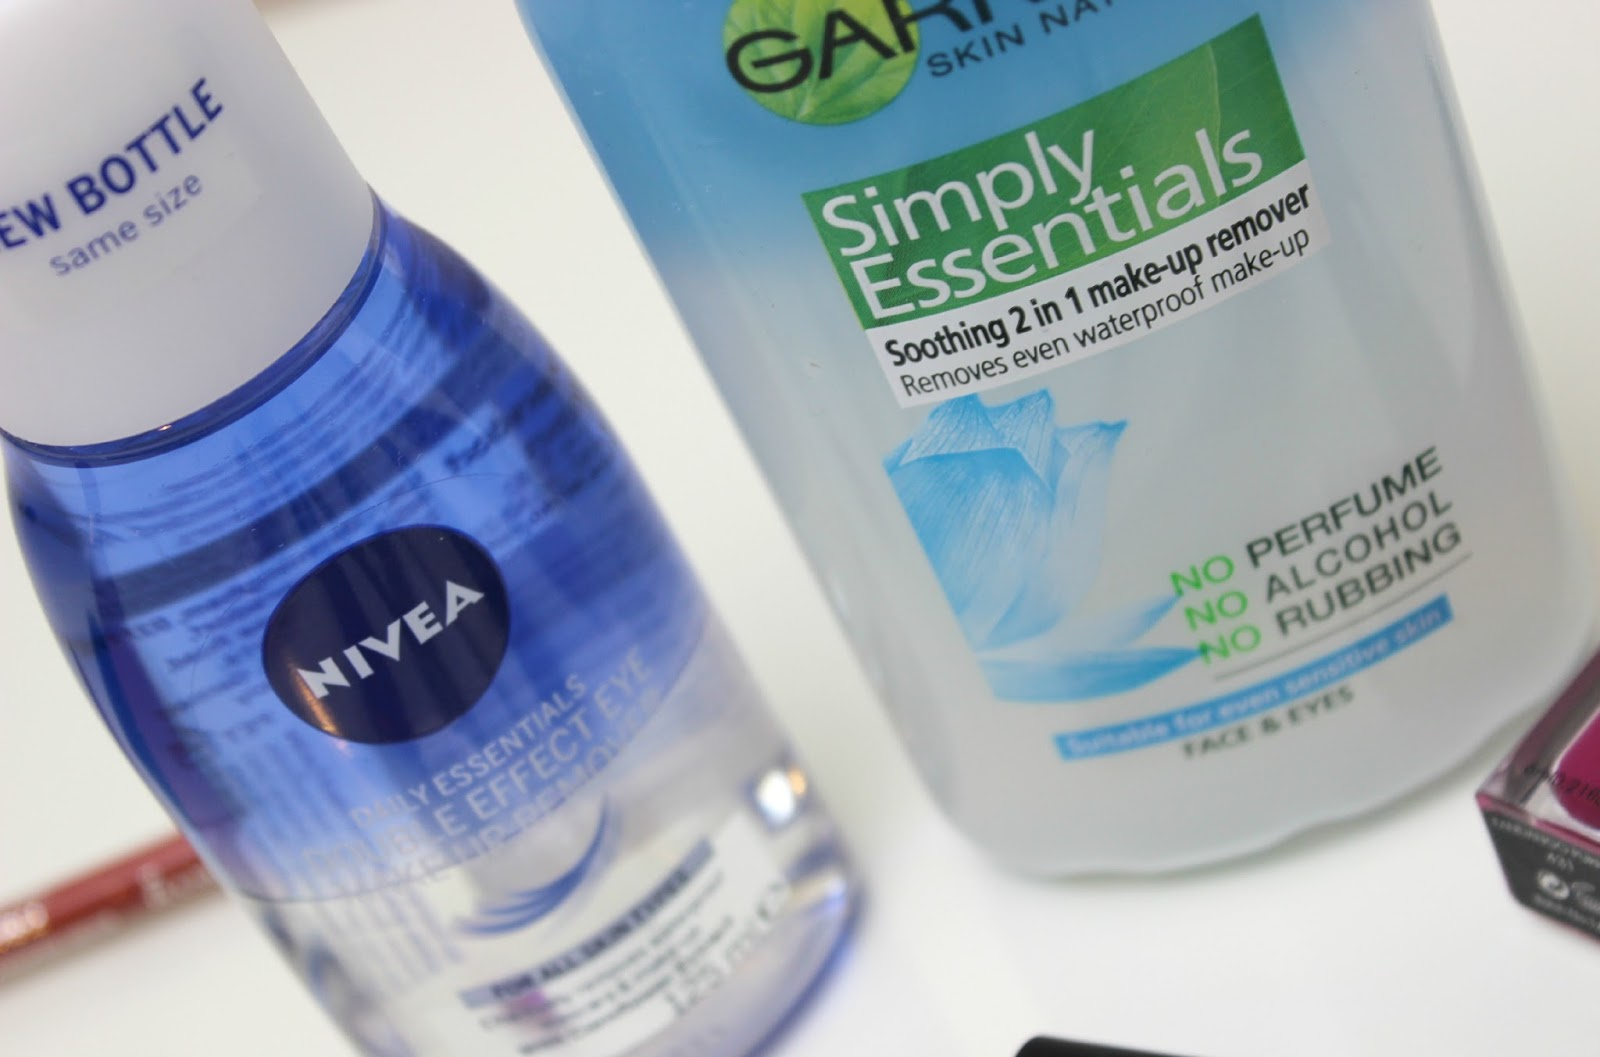 A picture of Nivea Daily Essentials Double Effect Eye Make-Up Remover and Garnier Simply Essentials Soothing 2 in 1 Make-Up Remover